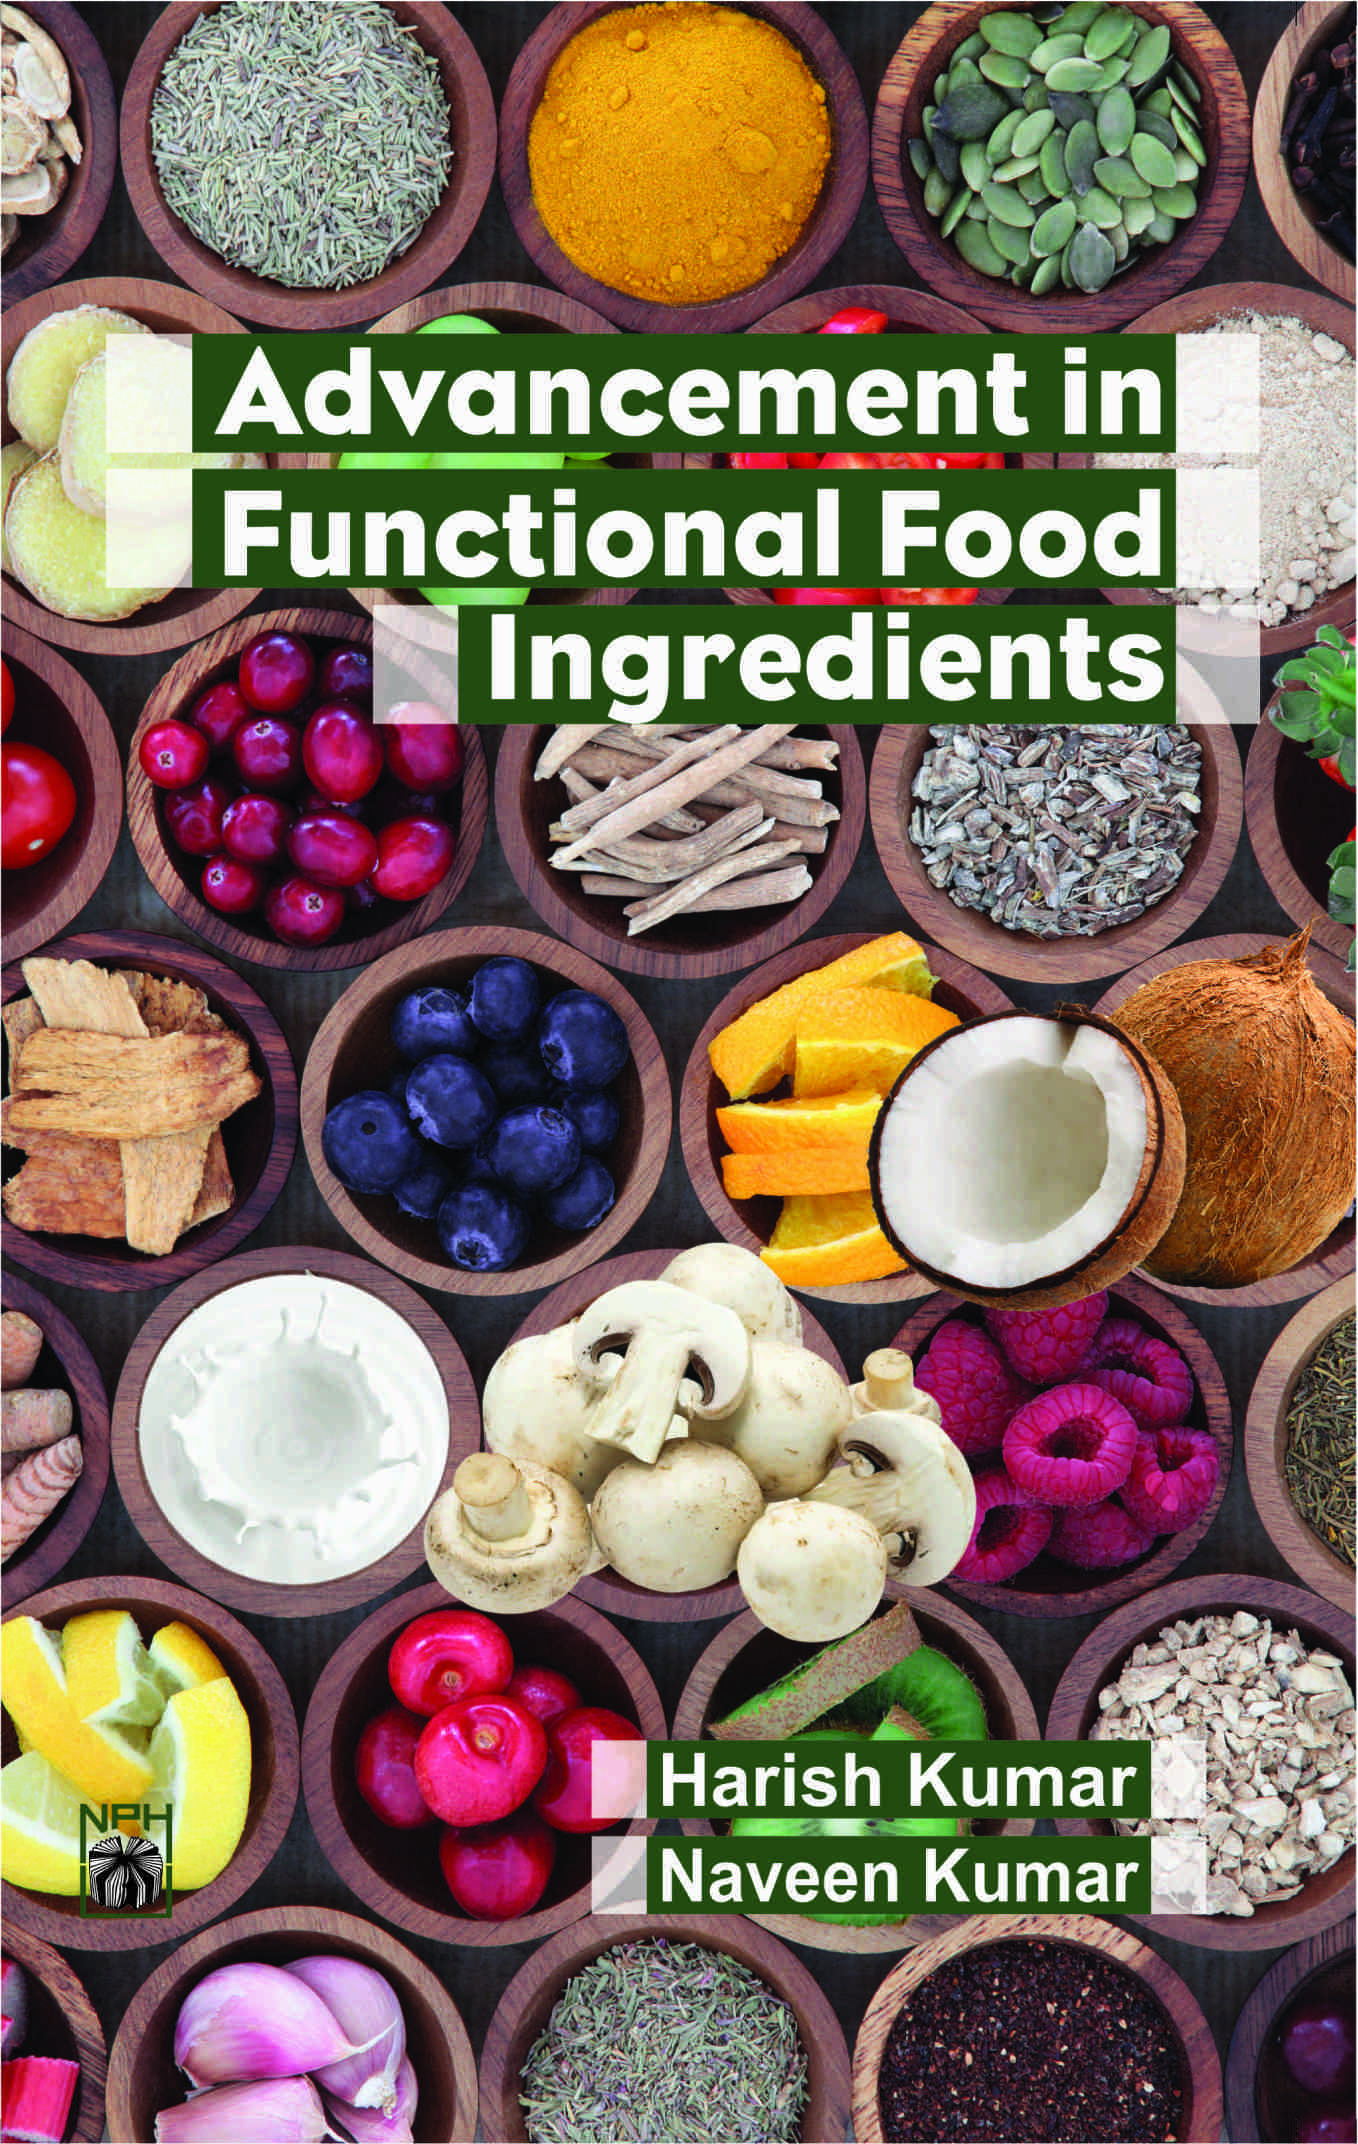 Advances in Functional Food Ingredients